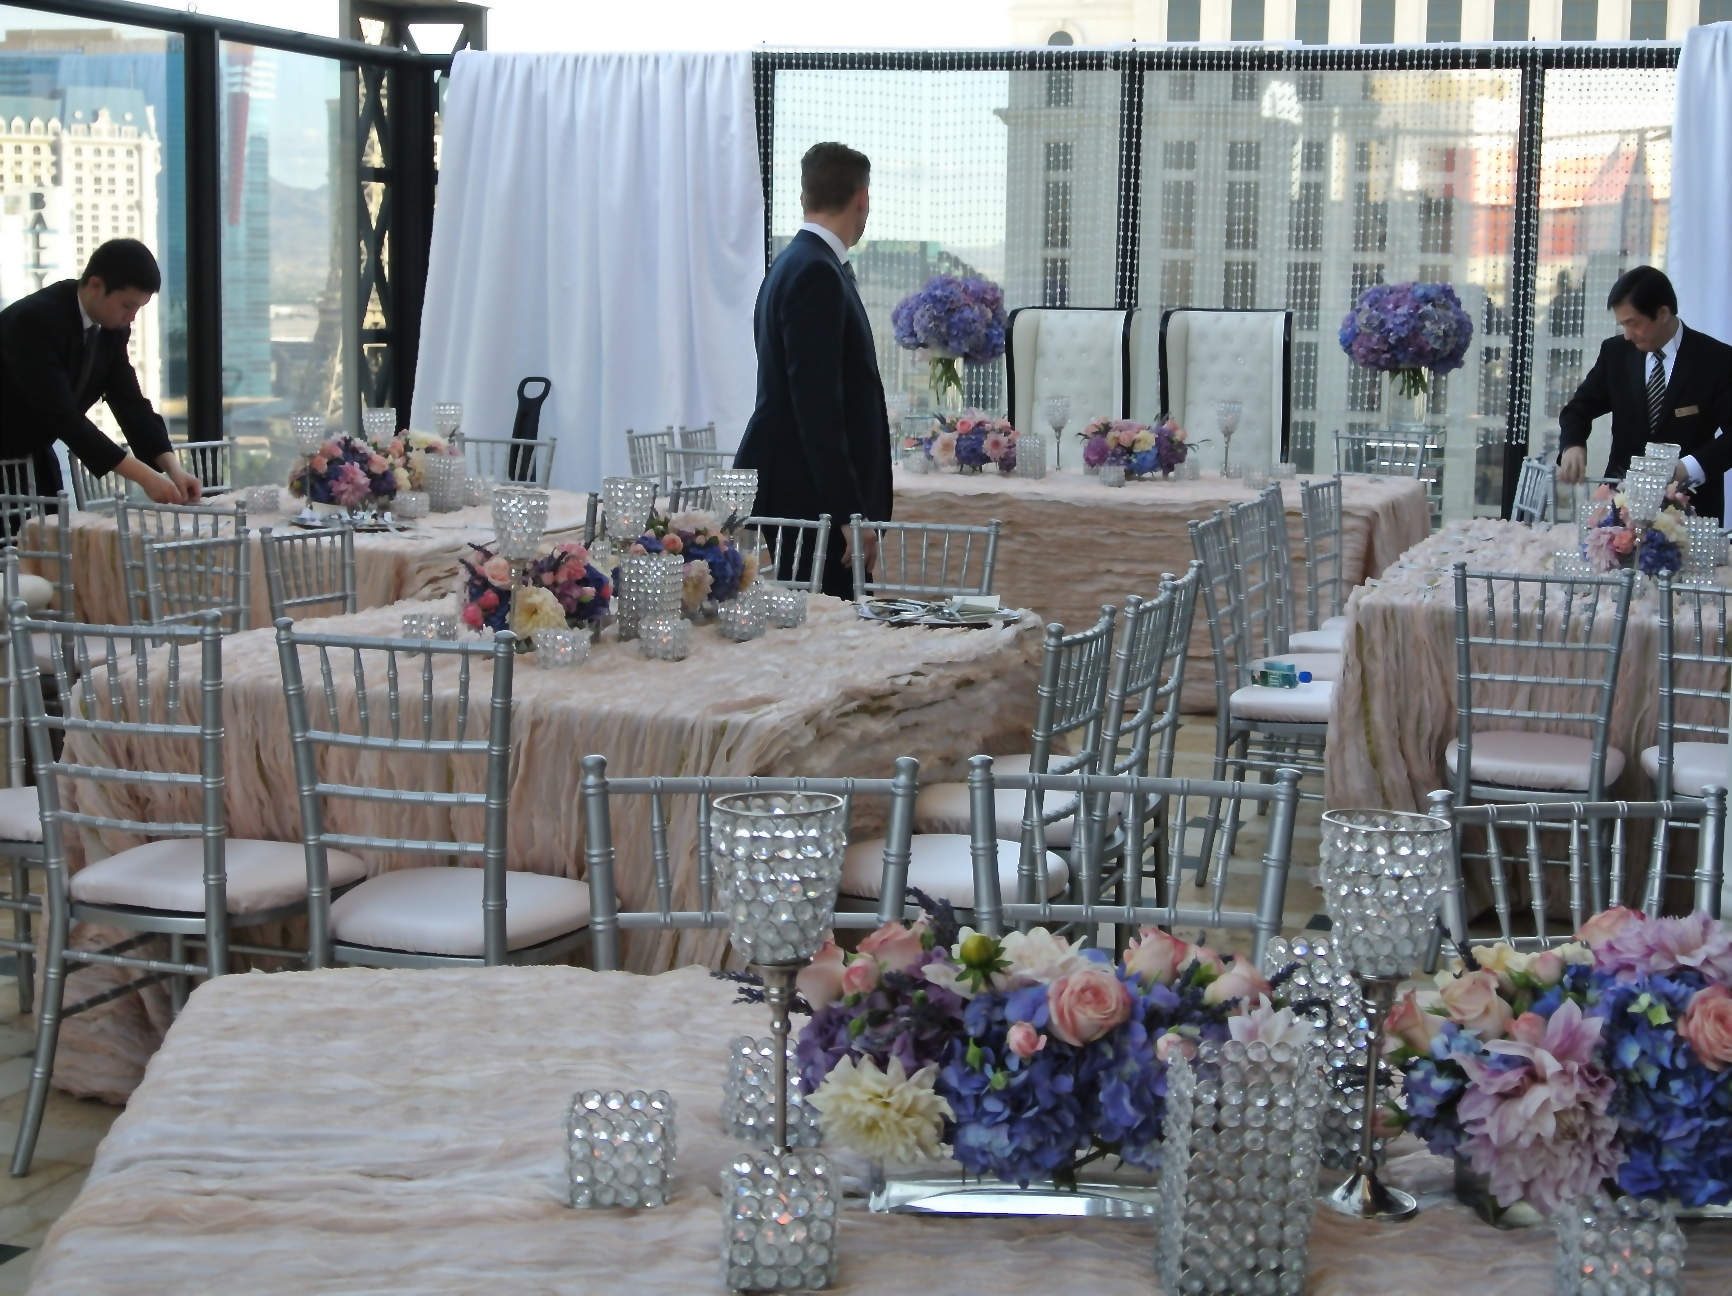 All hands were on deck to transform the balcony, removing the ceremony set up and bringing in custom tables, chairs, linens, and florals for the five course dinner reception.